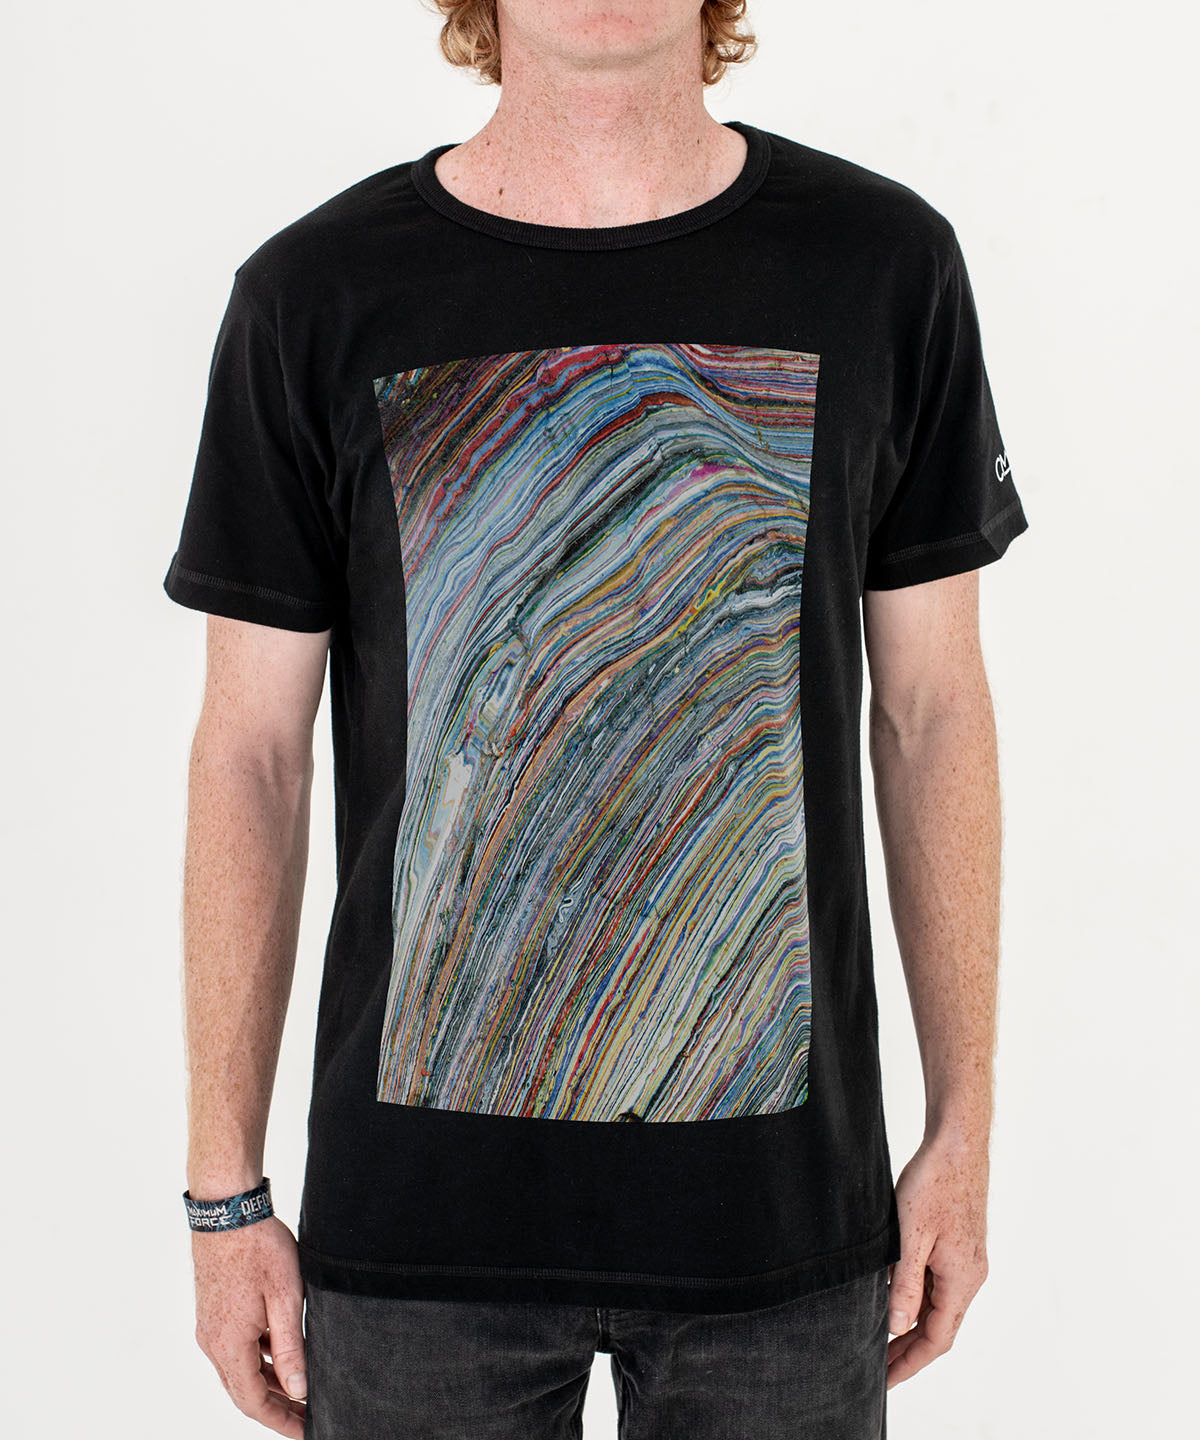 David Walker 'Paint & Memory' T-Shirt